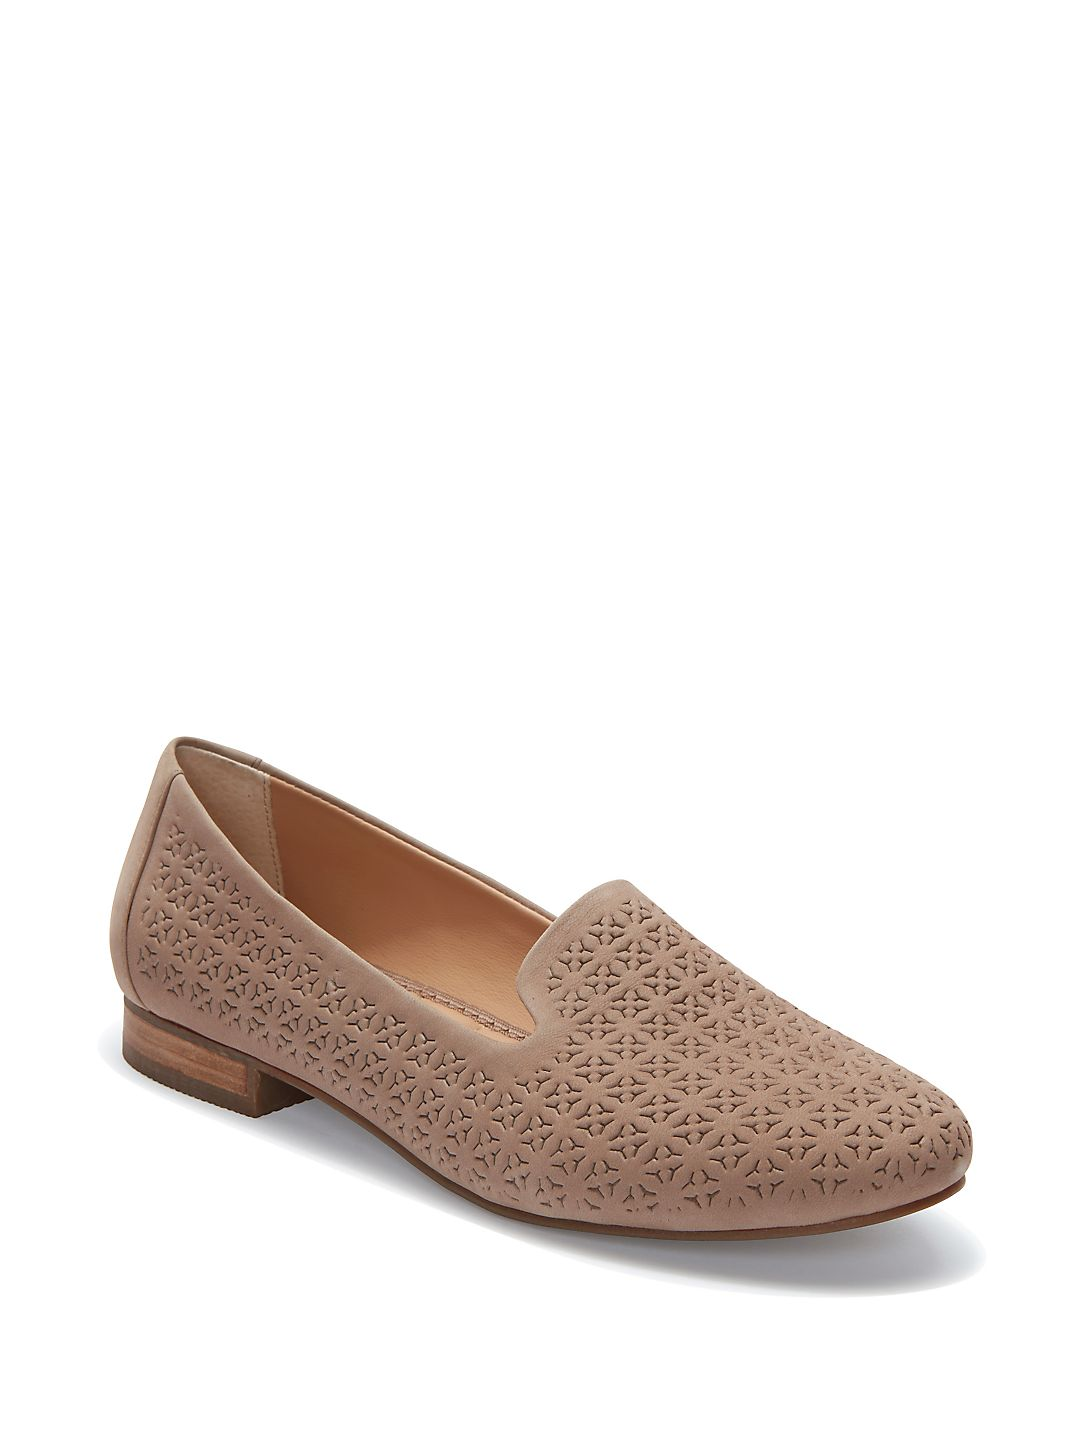 Yani Nubuck Leather Loafers